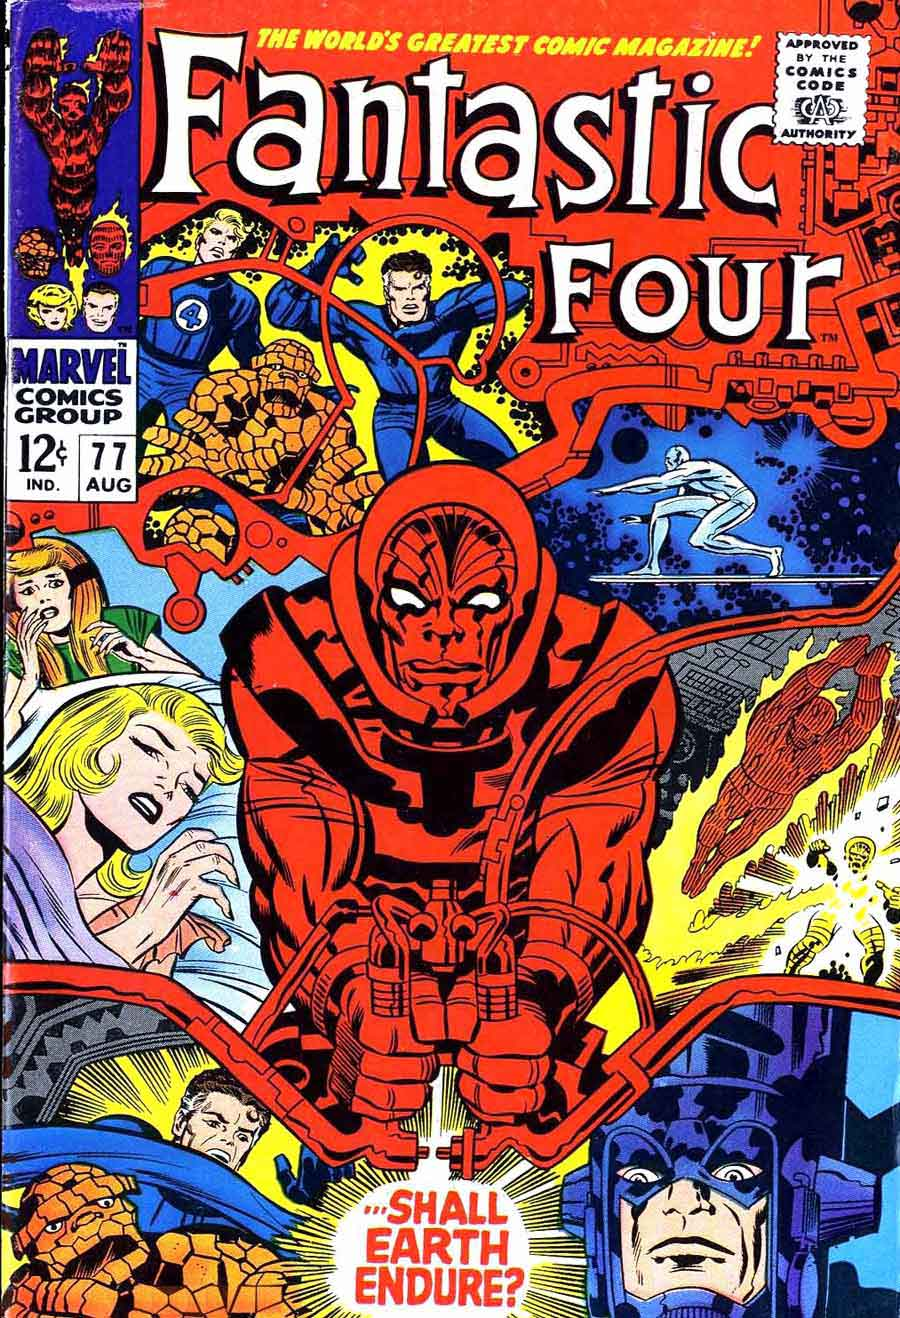 fantastic four   jack kirby art  cover  pencil ink - fantastc four v  marvel s silver age comic book cover art by jackkirby